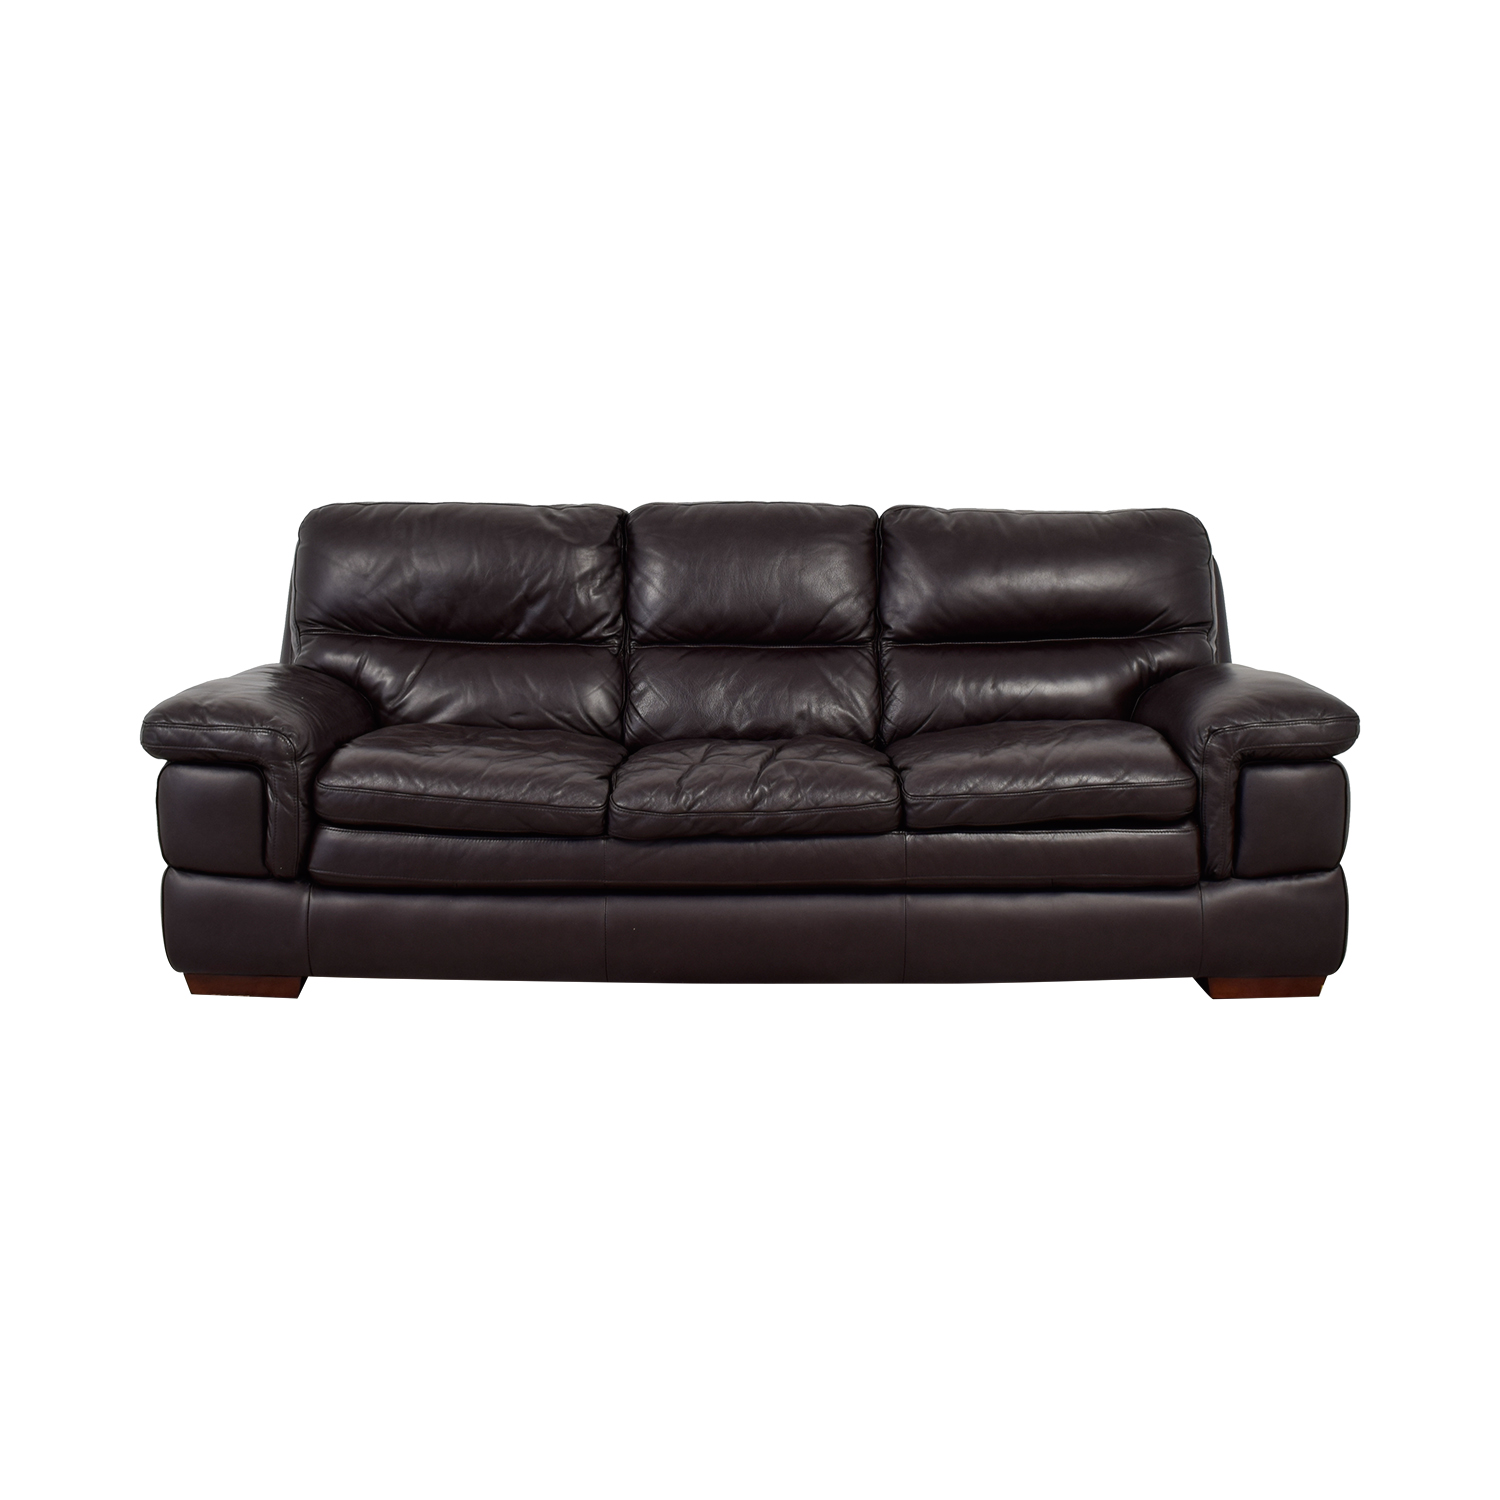 beige and brown leather sectional sofa with built in footrests craigslist boston couch 50 off ikea klippan sofas